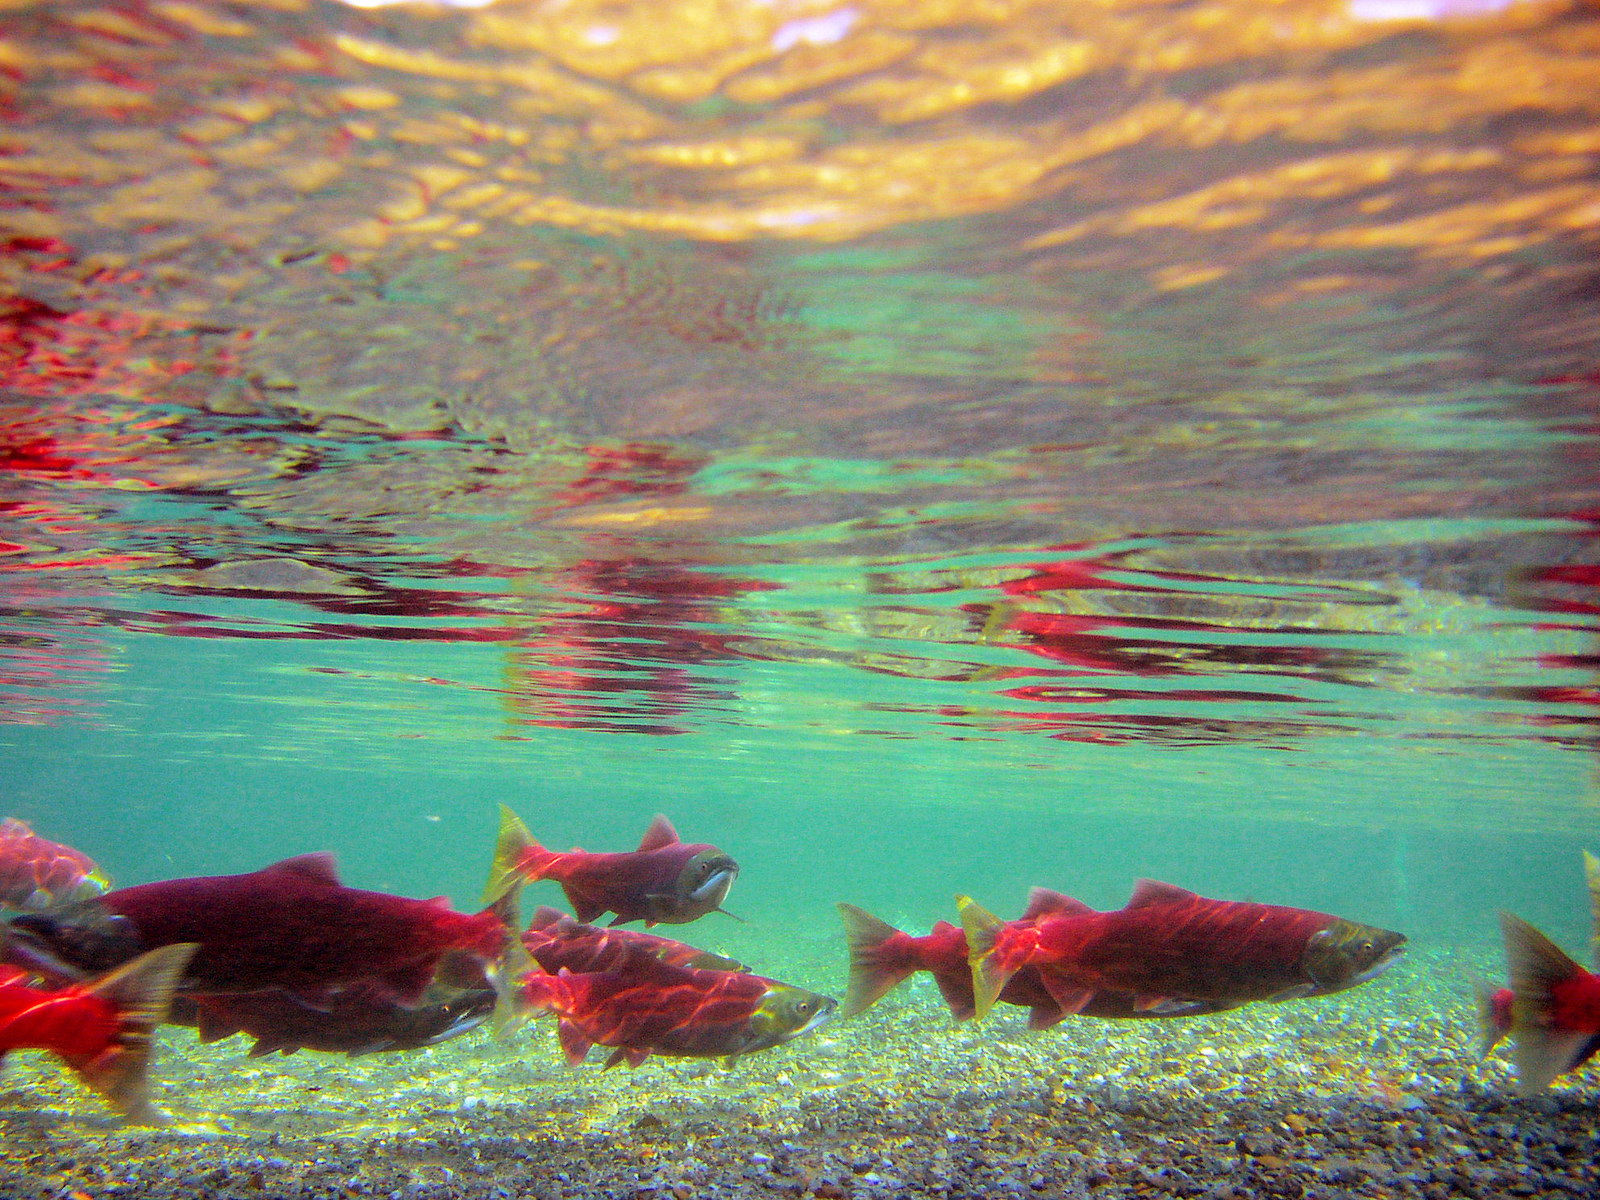 Like all salmon, these sockeye are predators. They do not naturally live off plants. Credit NPS / D. Young (Public Domain)